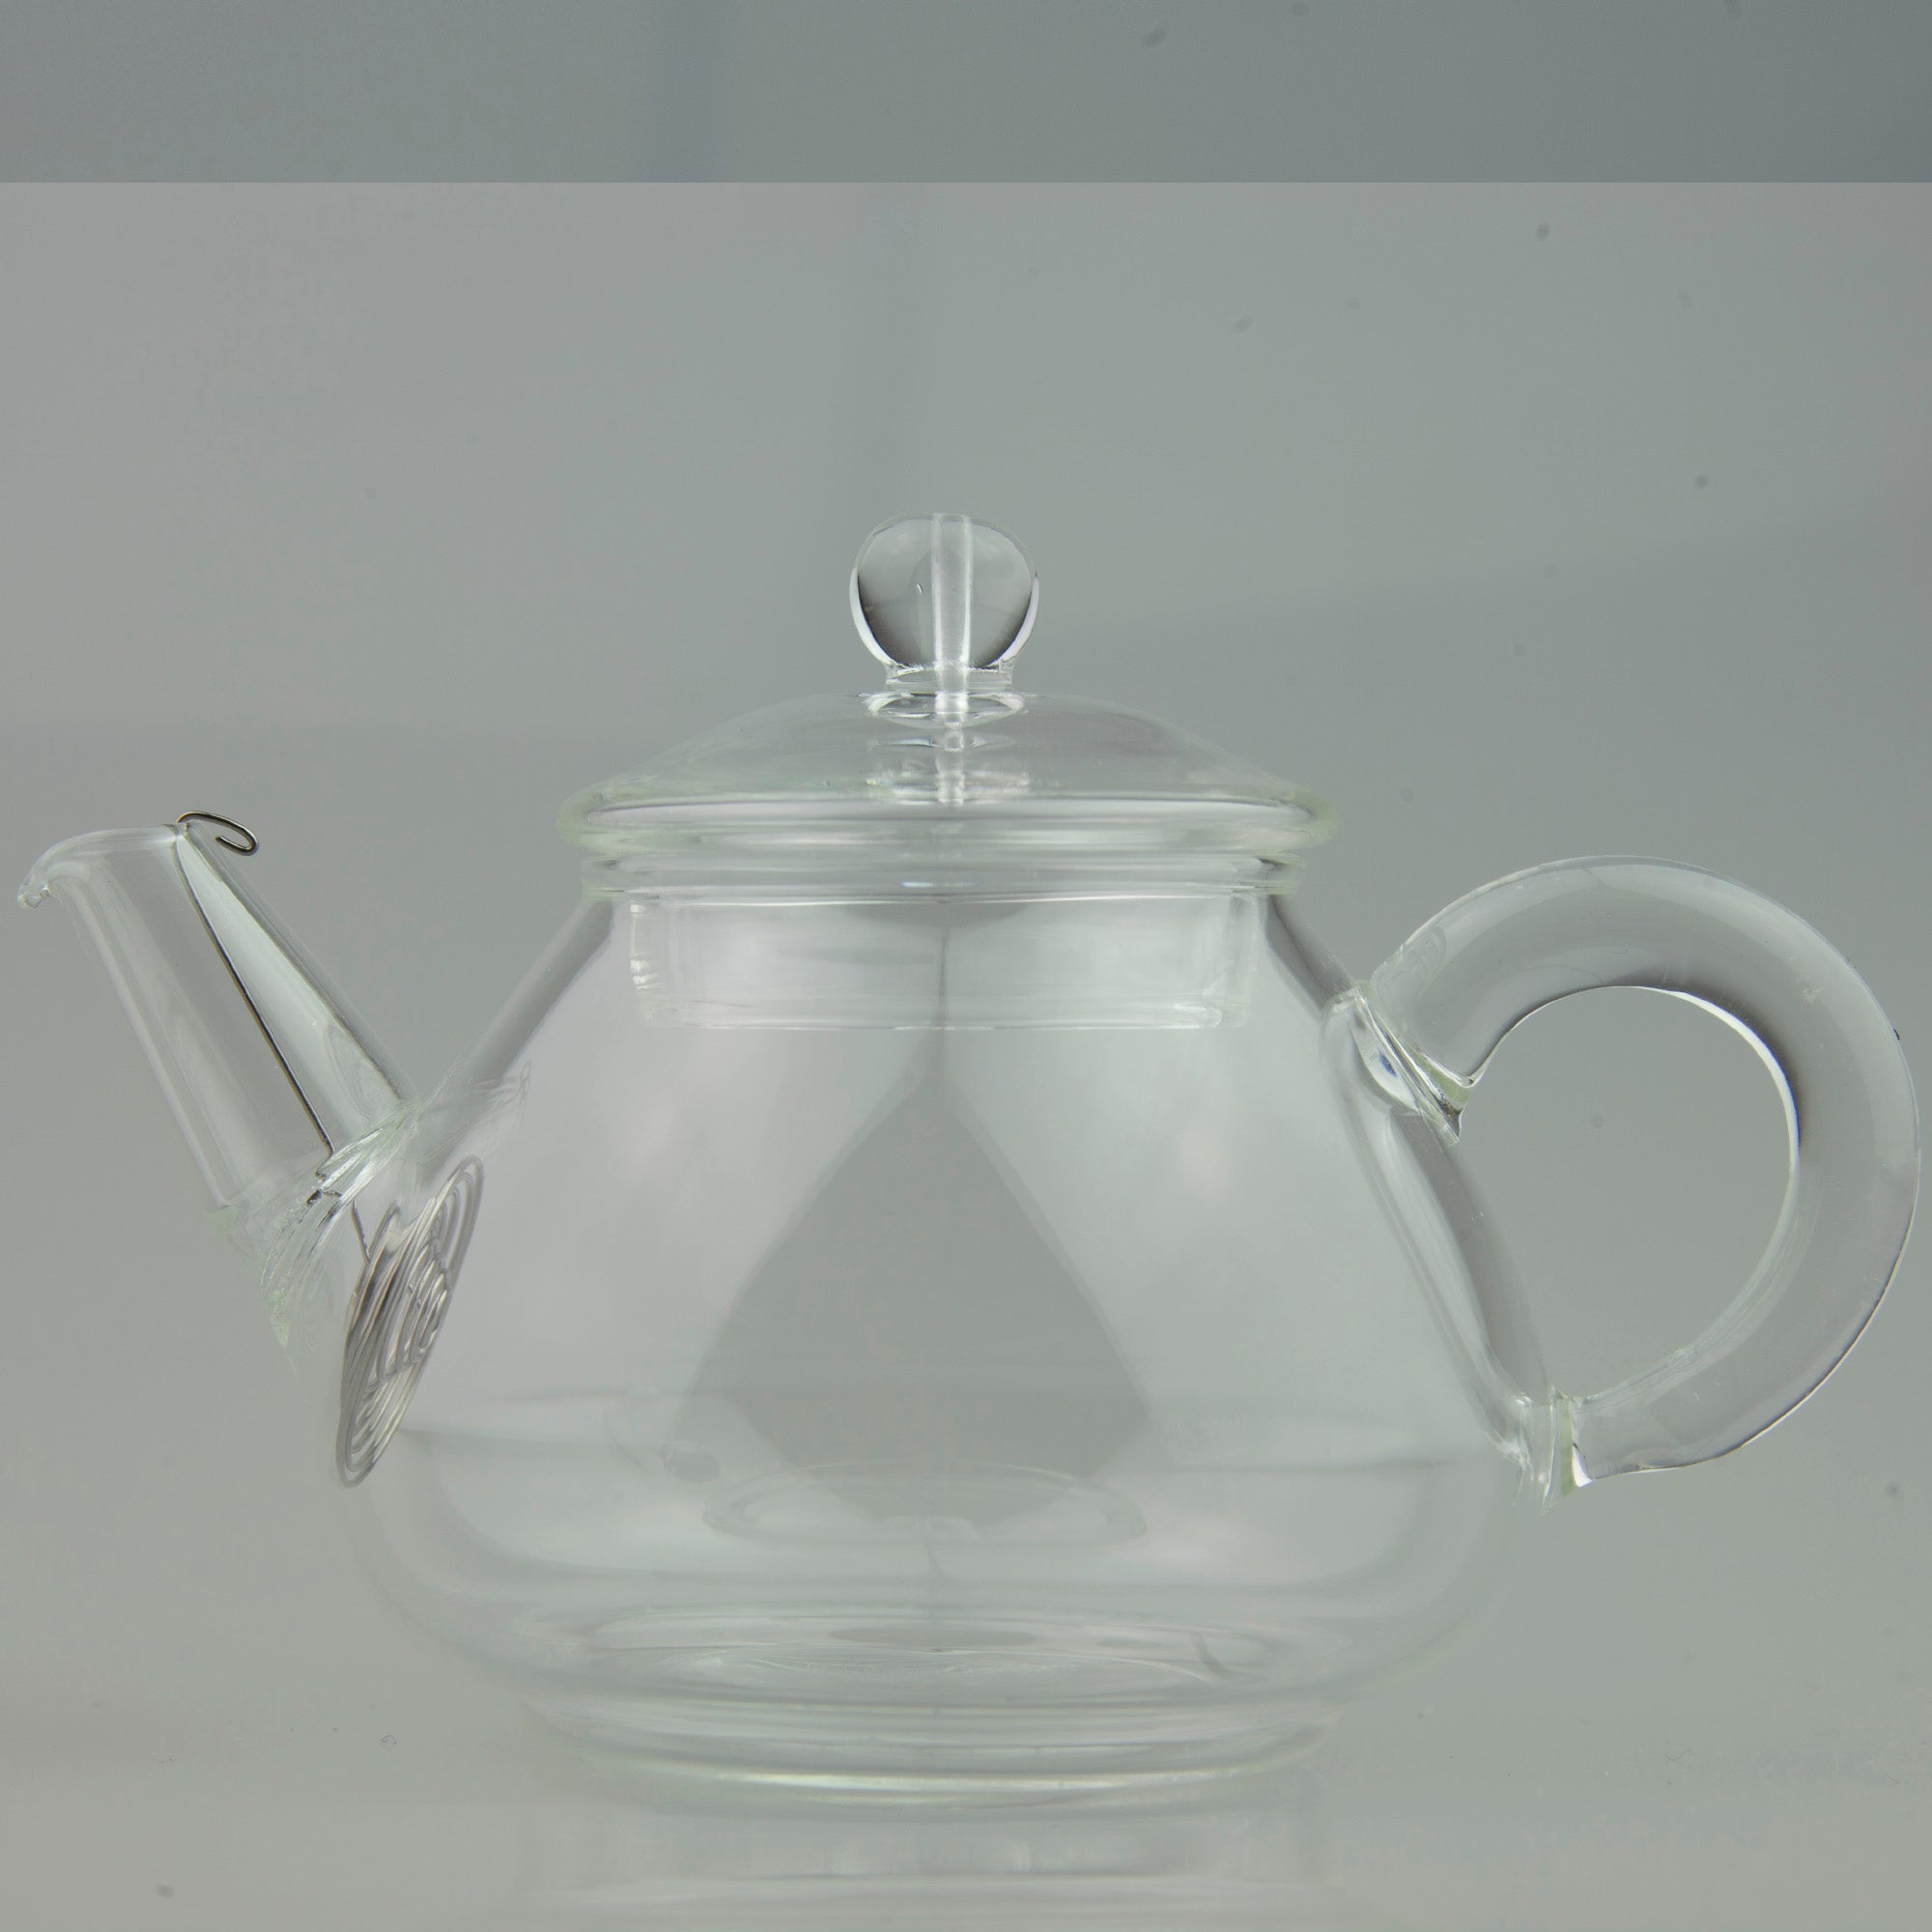 150ml Glass Teapot